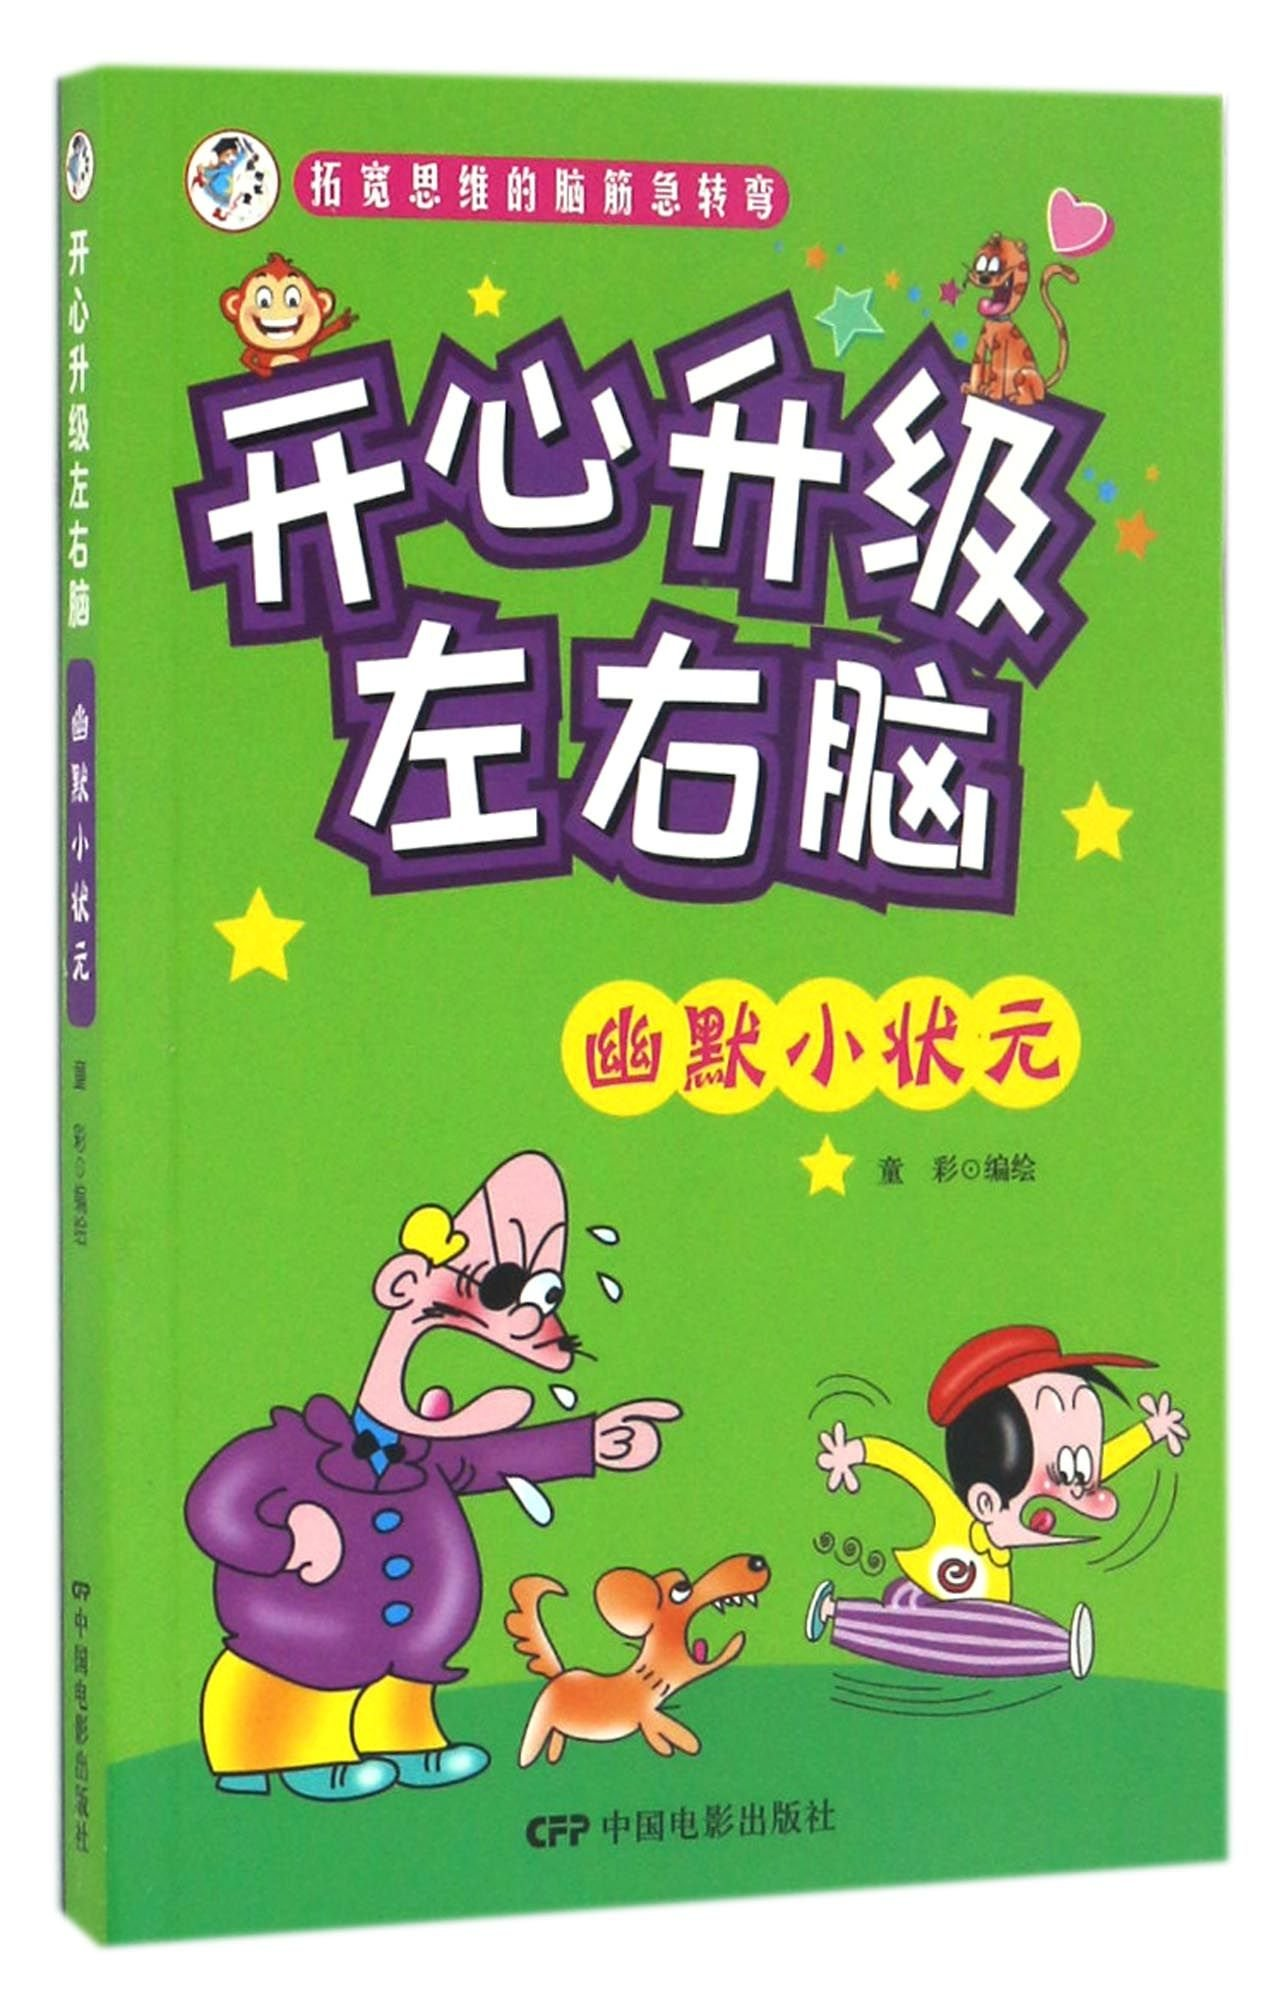 The Best Humor (Chinese Edition) ebook